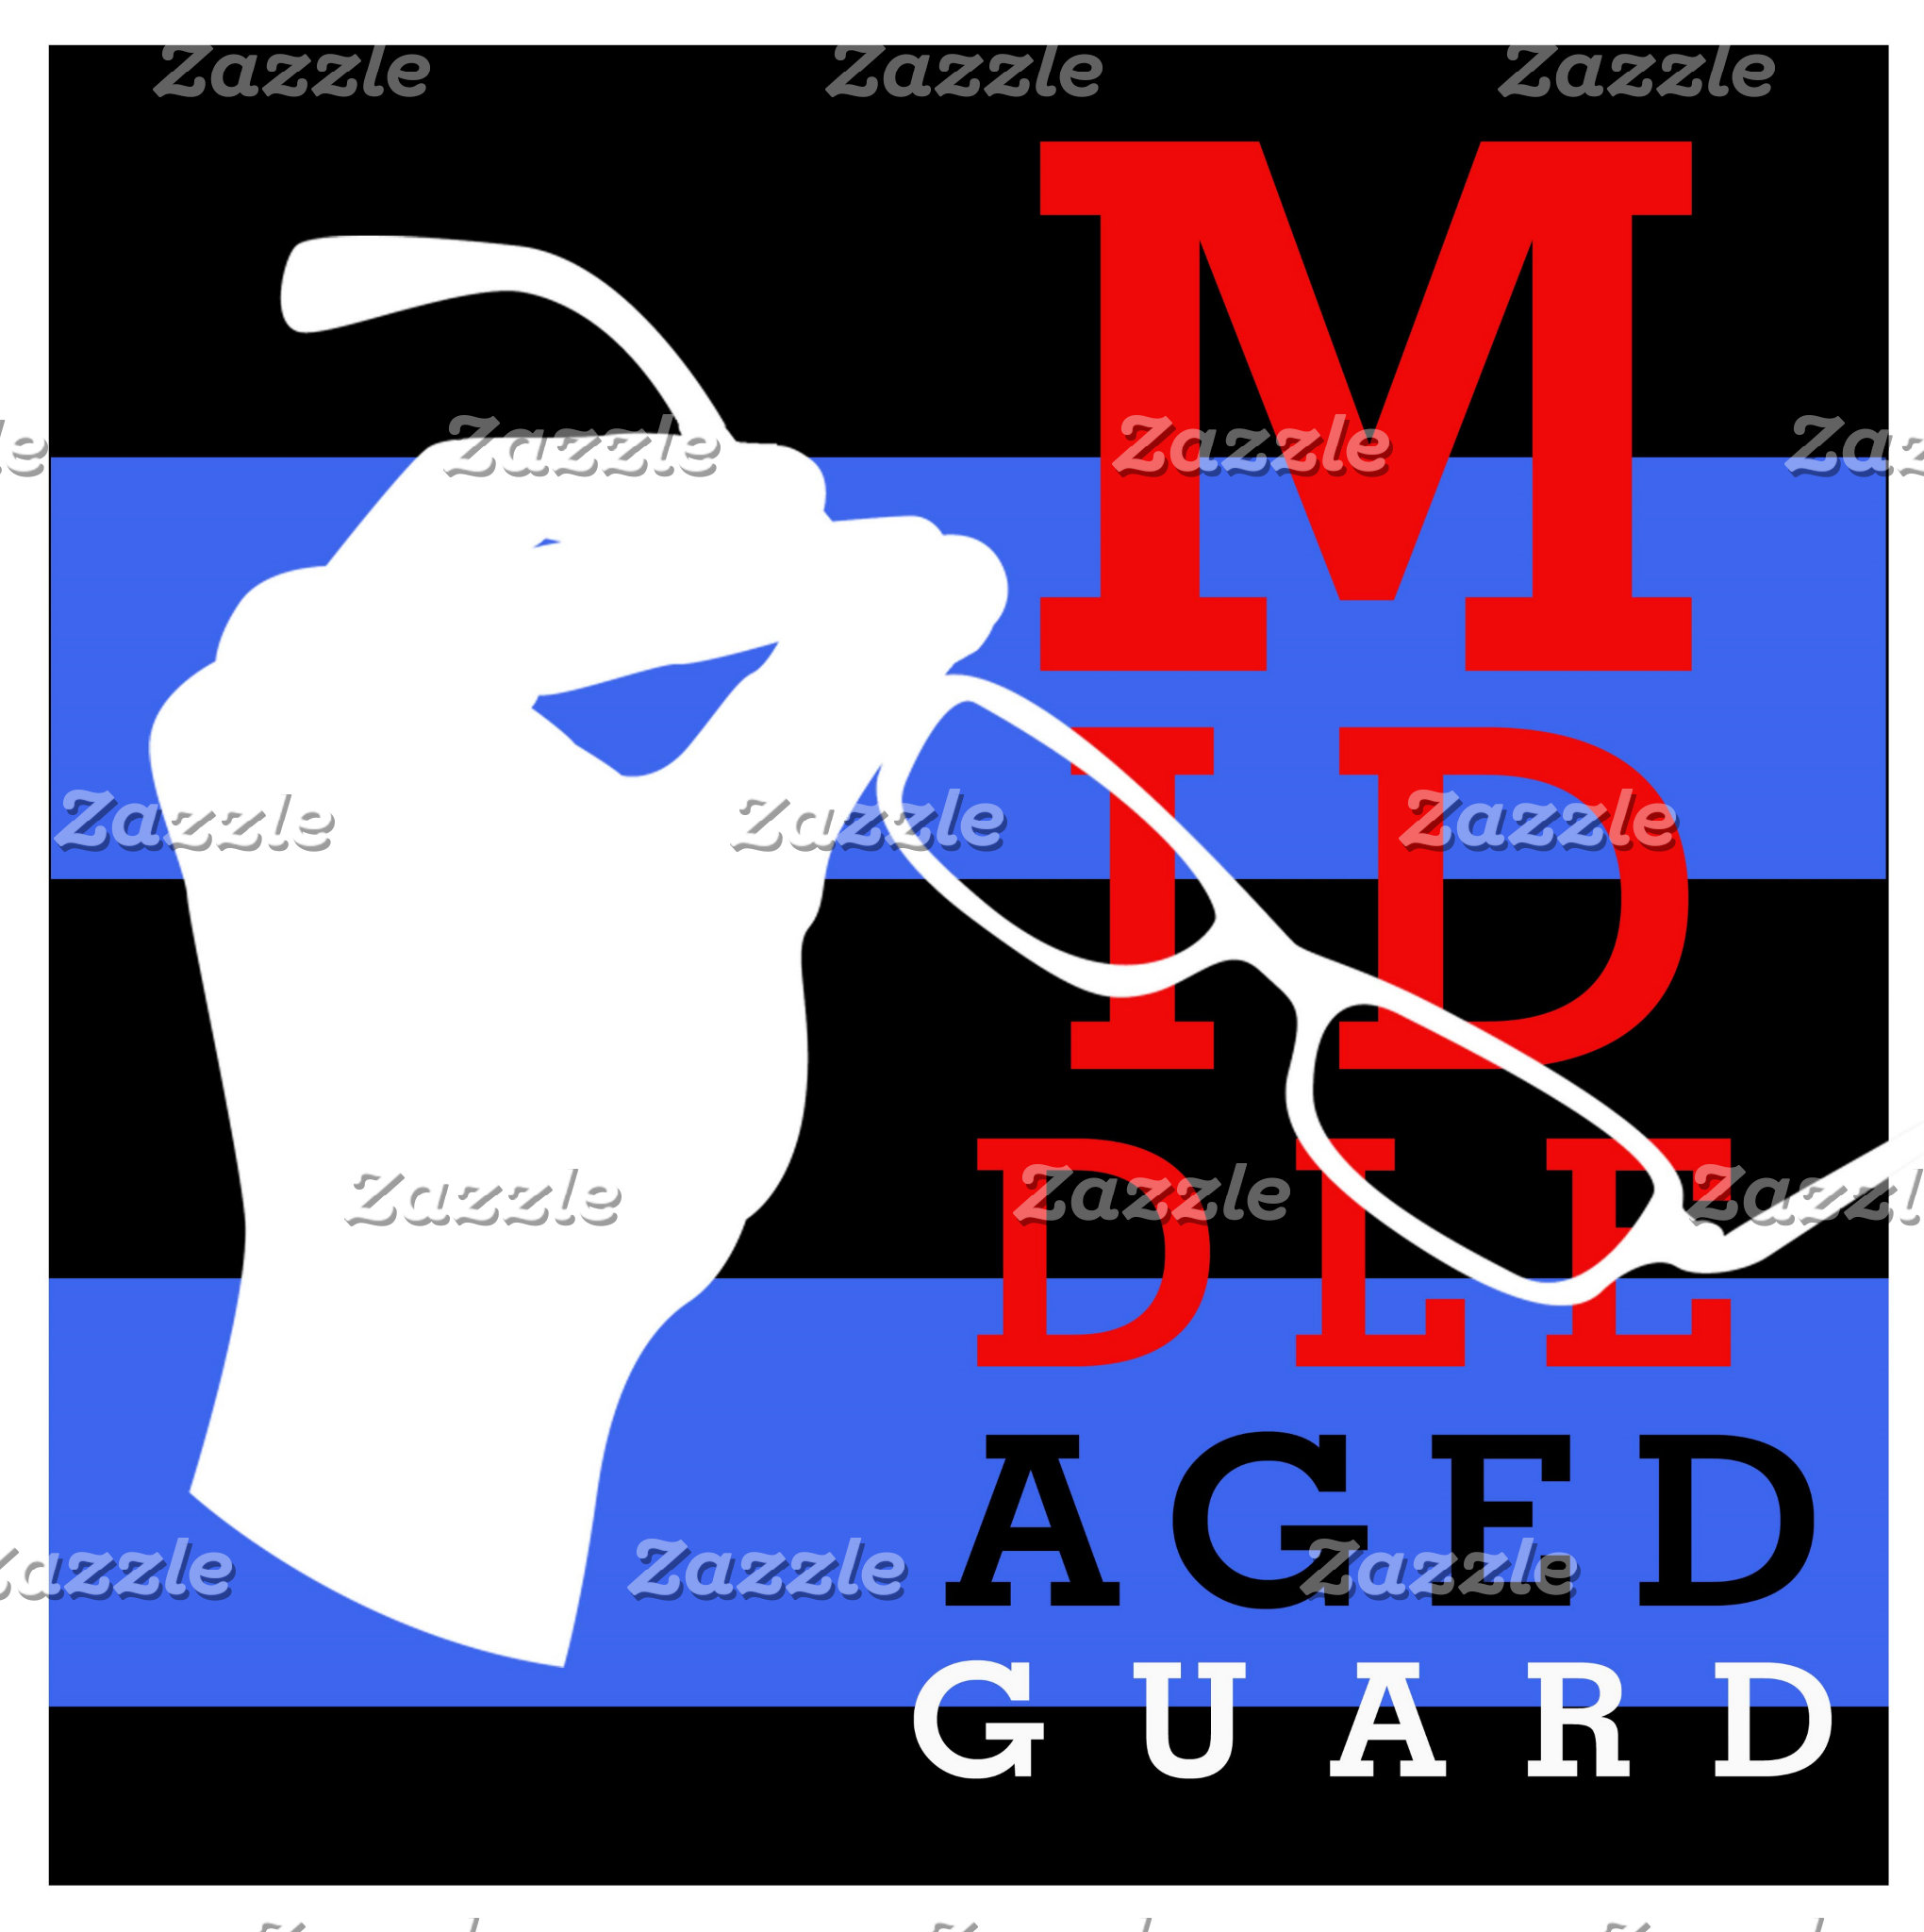 Middle Aged Guard